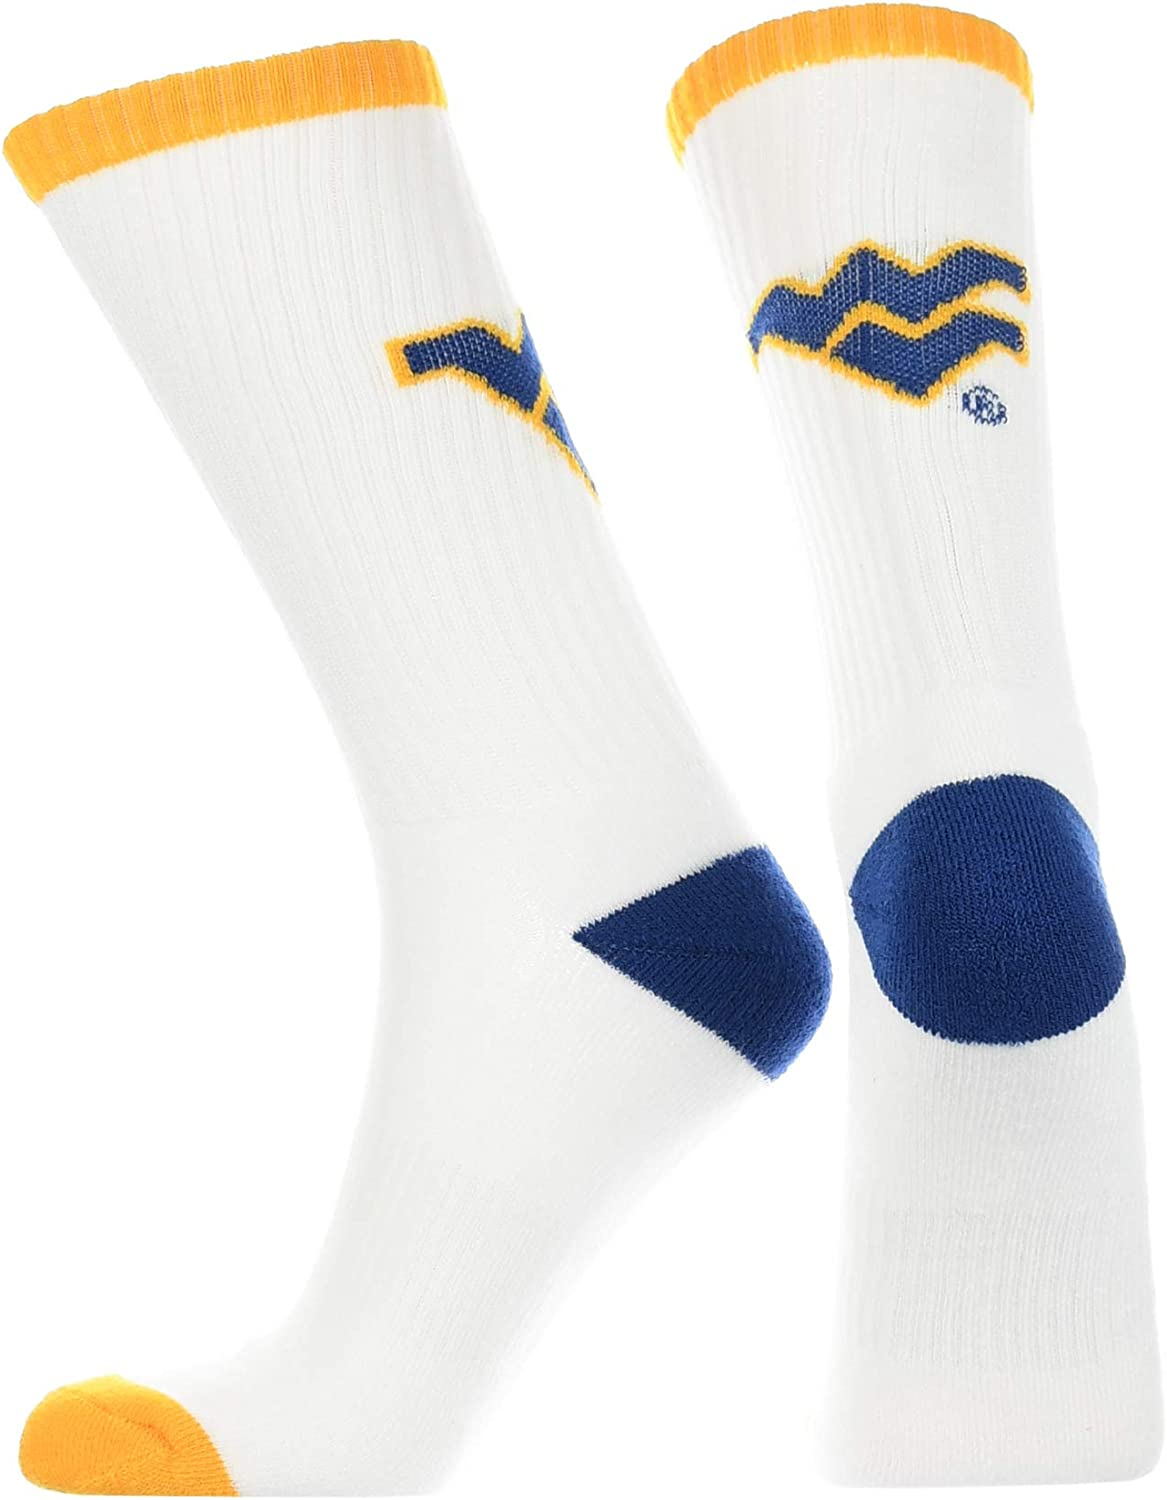 TCK West Virginia Mountaineers Socks Victory Parade Crew Length